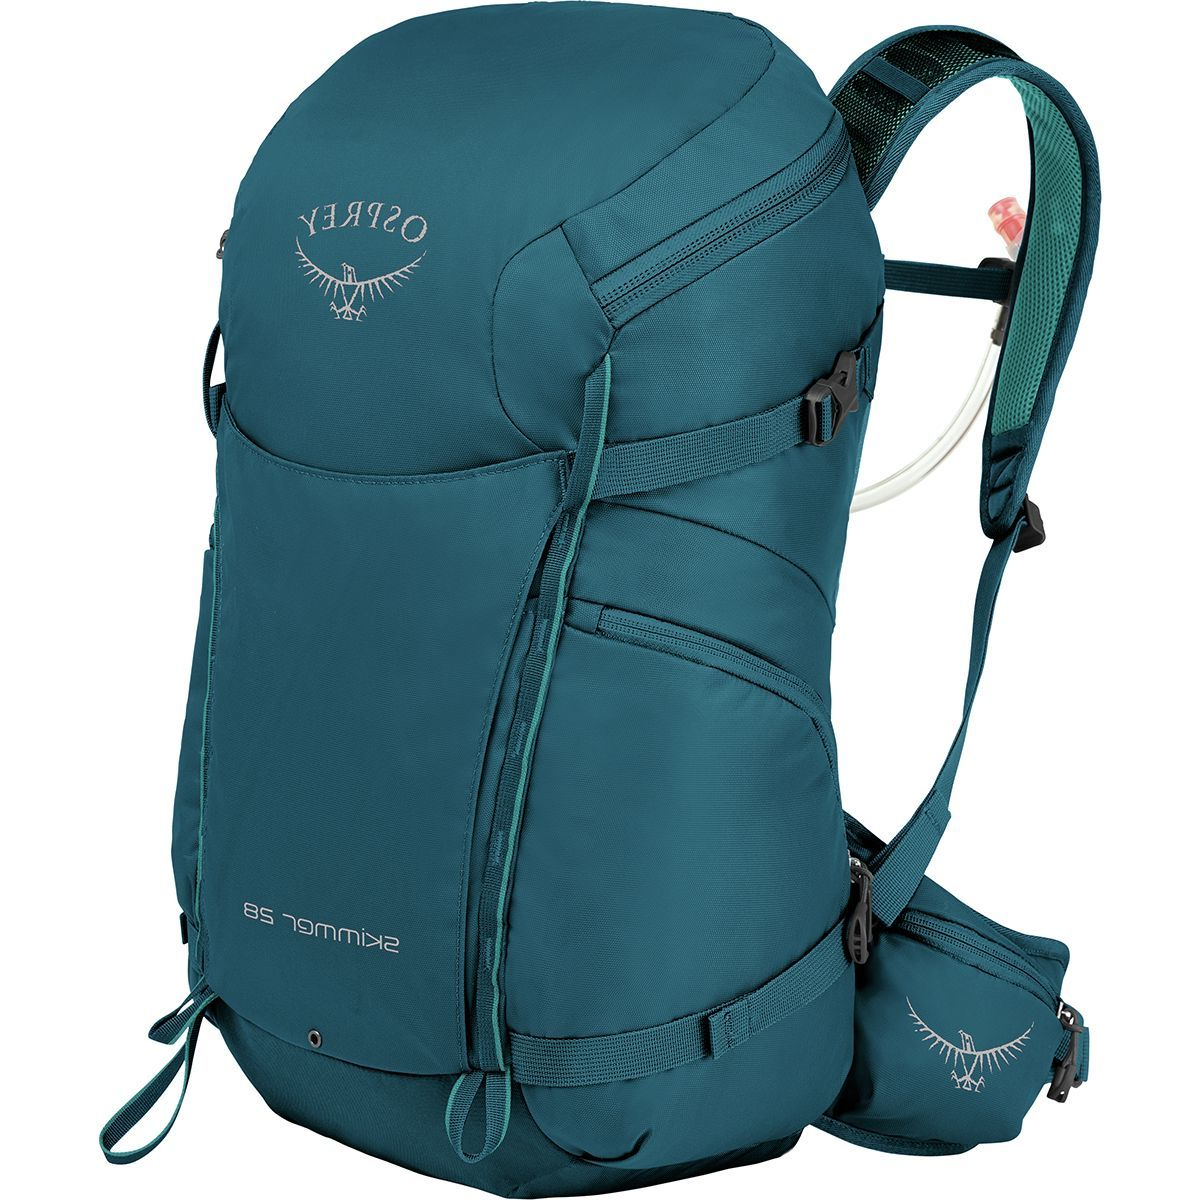 Osprey Packs Skimmer 28L Backpack - Women's